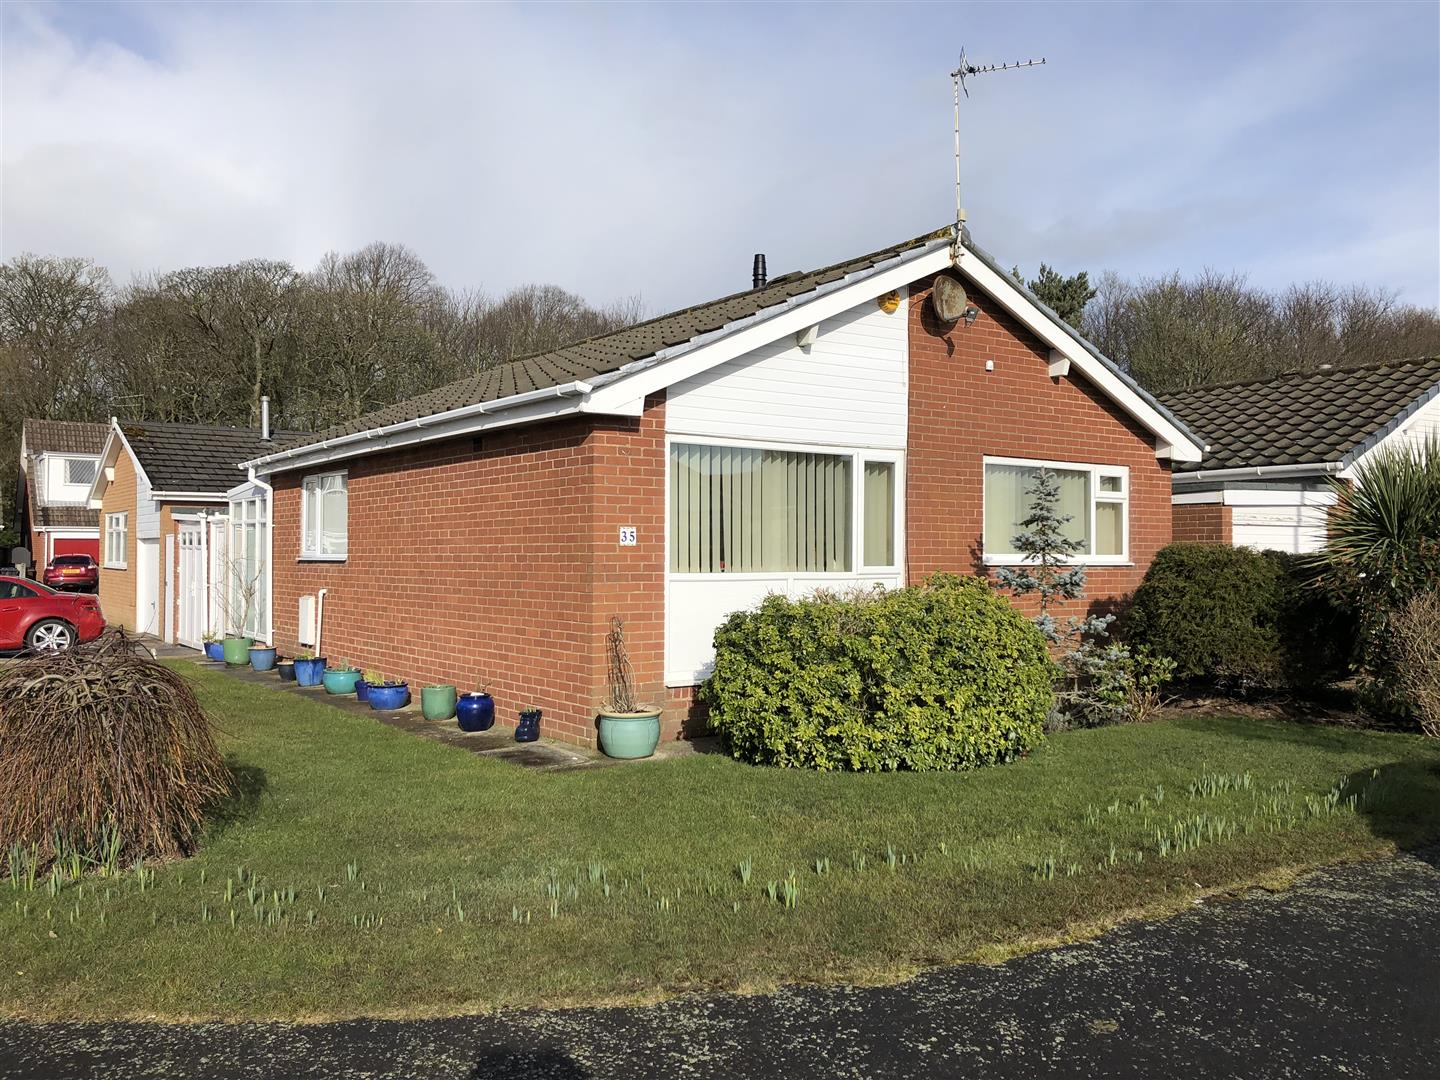 2 Bedrooms Detached Bungalow for sale in Reedy Acre Place, Lytham